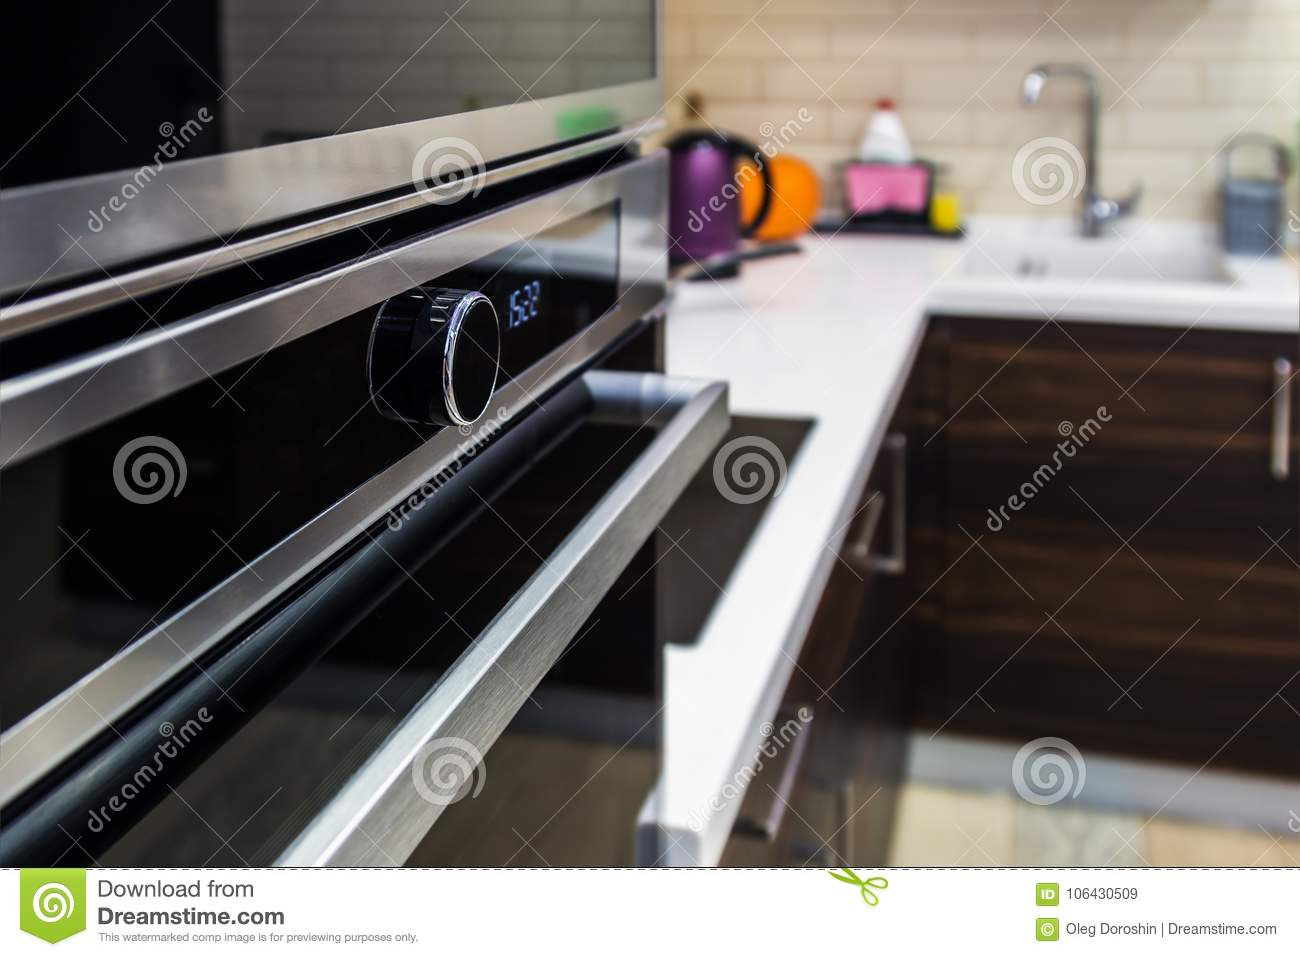 Kitchen Appliances Built Into Kitchen Cabinets Production Of